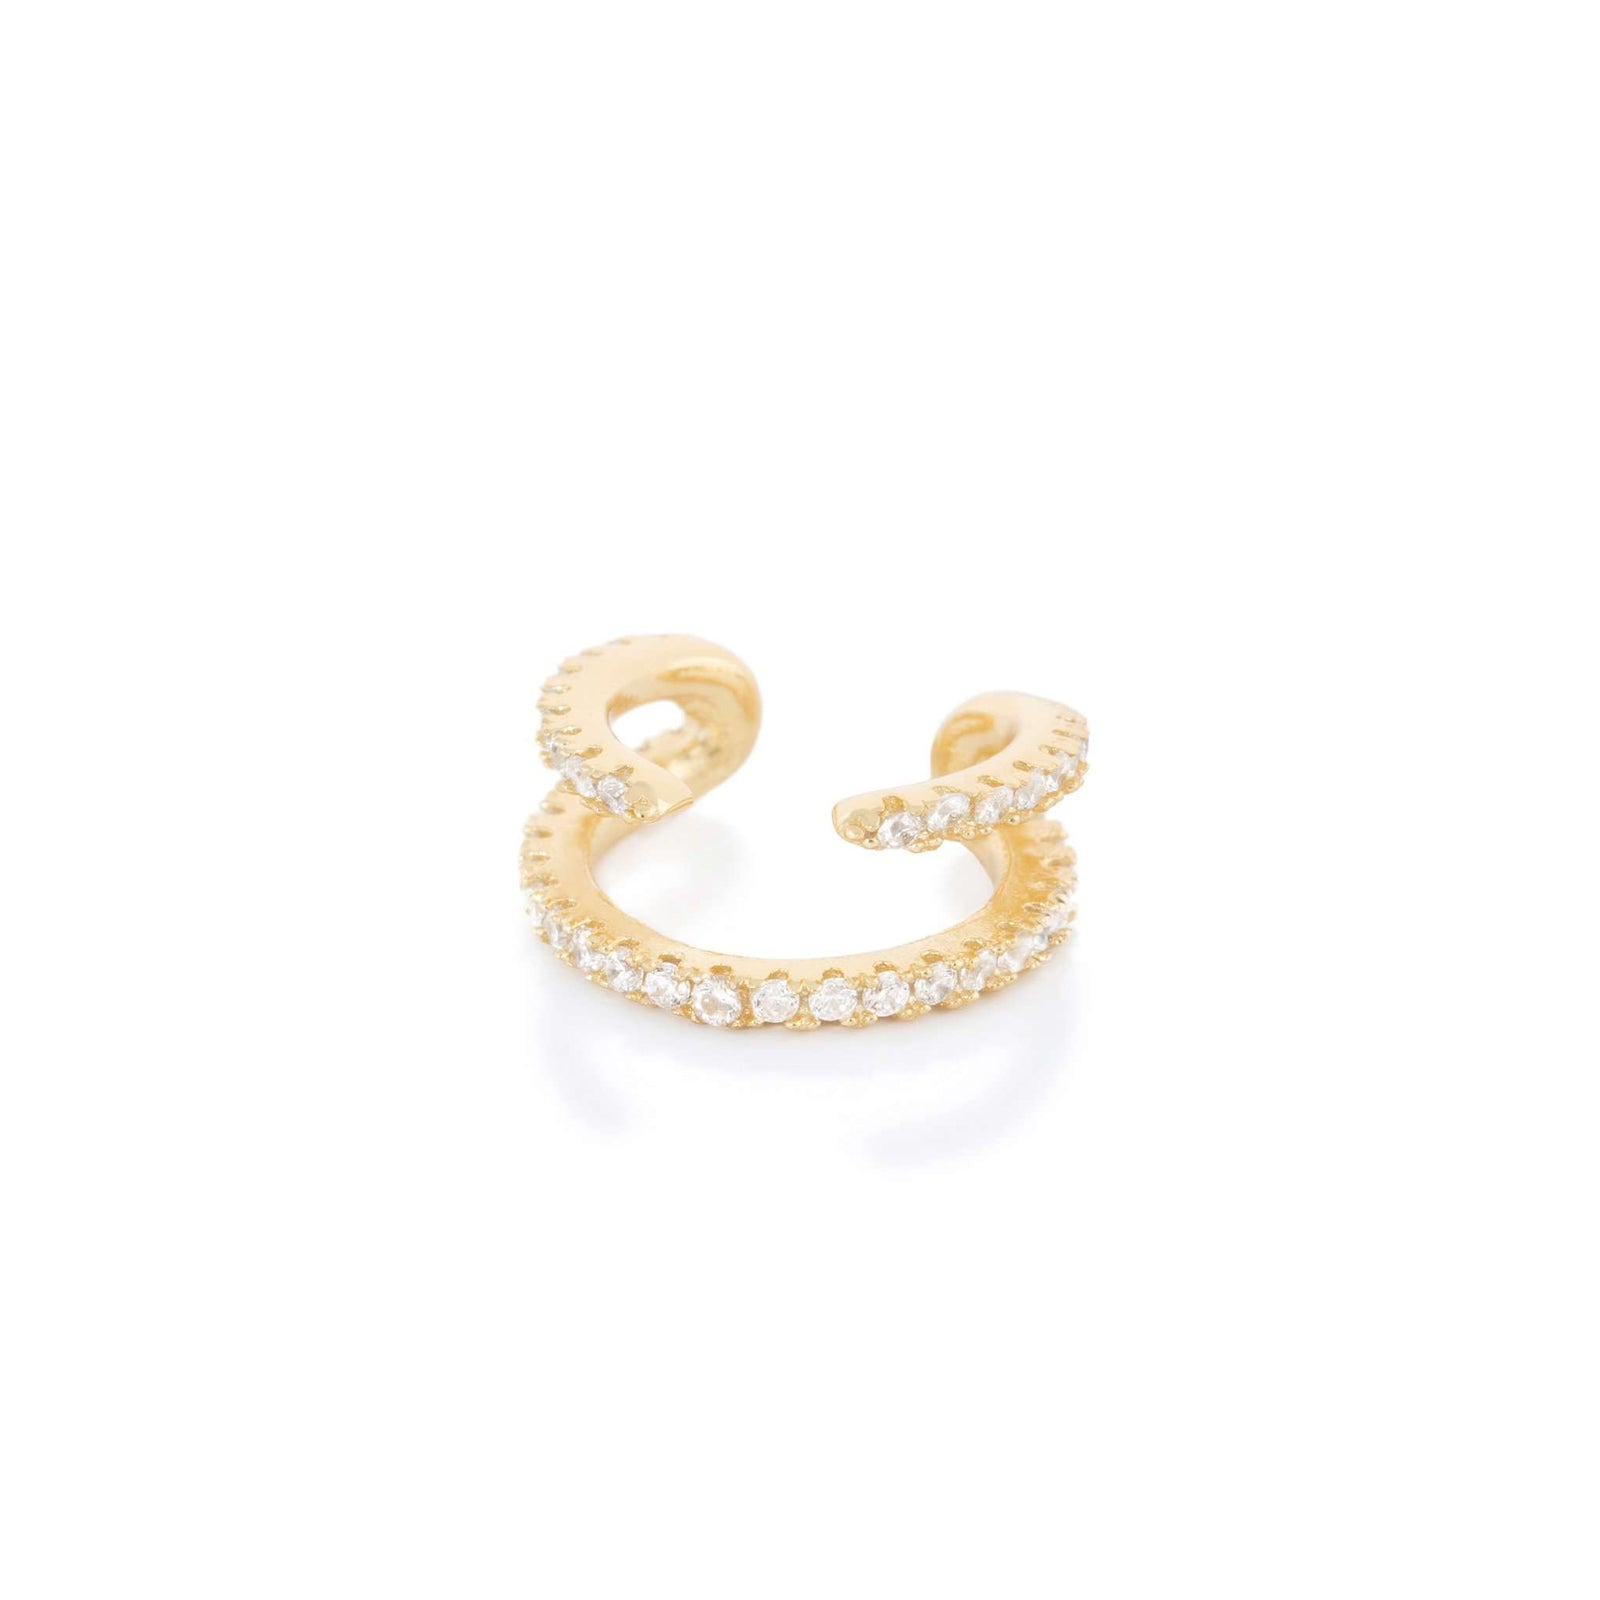 cosmo-pave-ear-cuffearrings-jewelry